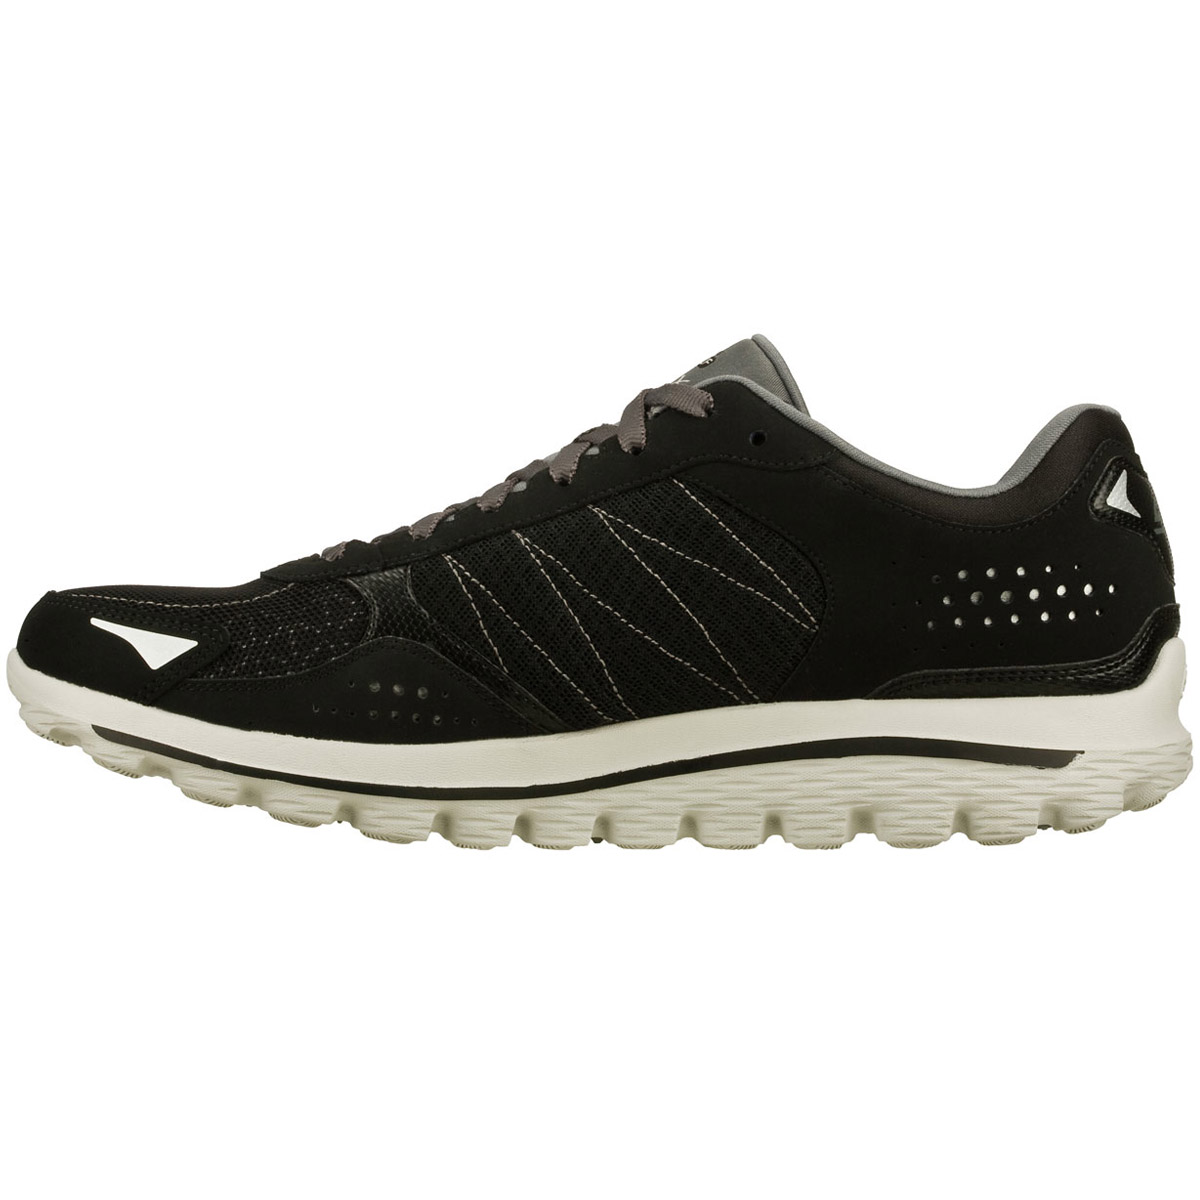 Skechers Spikeless Golf Shoes Uk